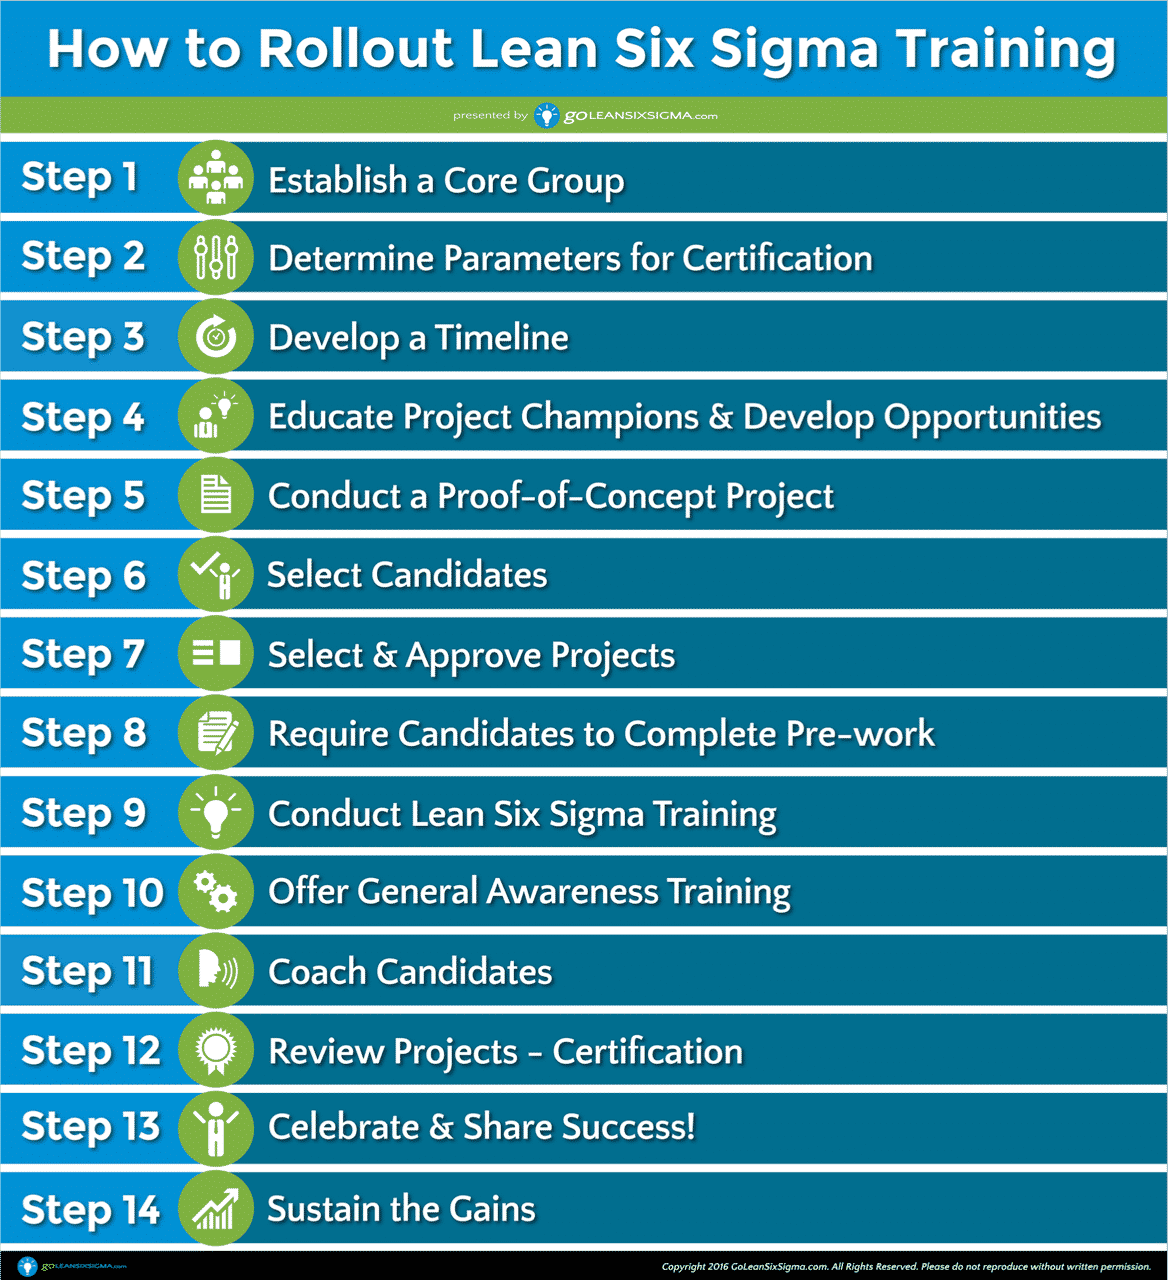 How To Successfully Rollout Lean Six Sigma Training